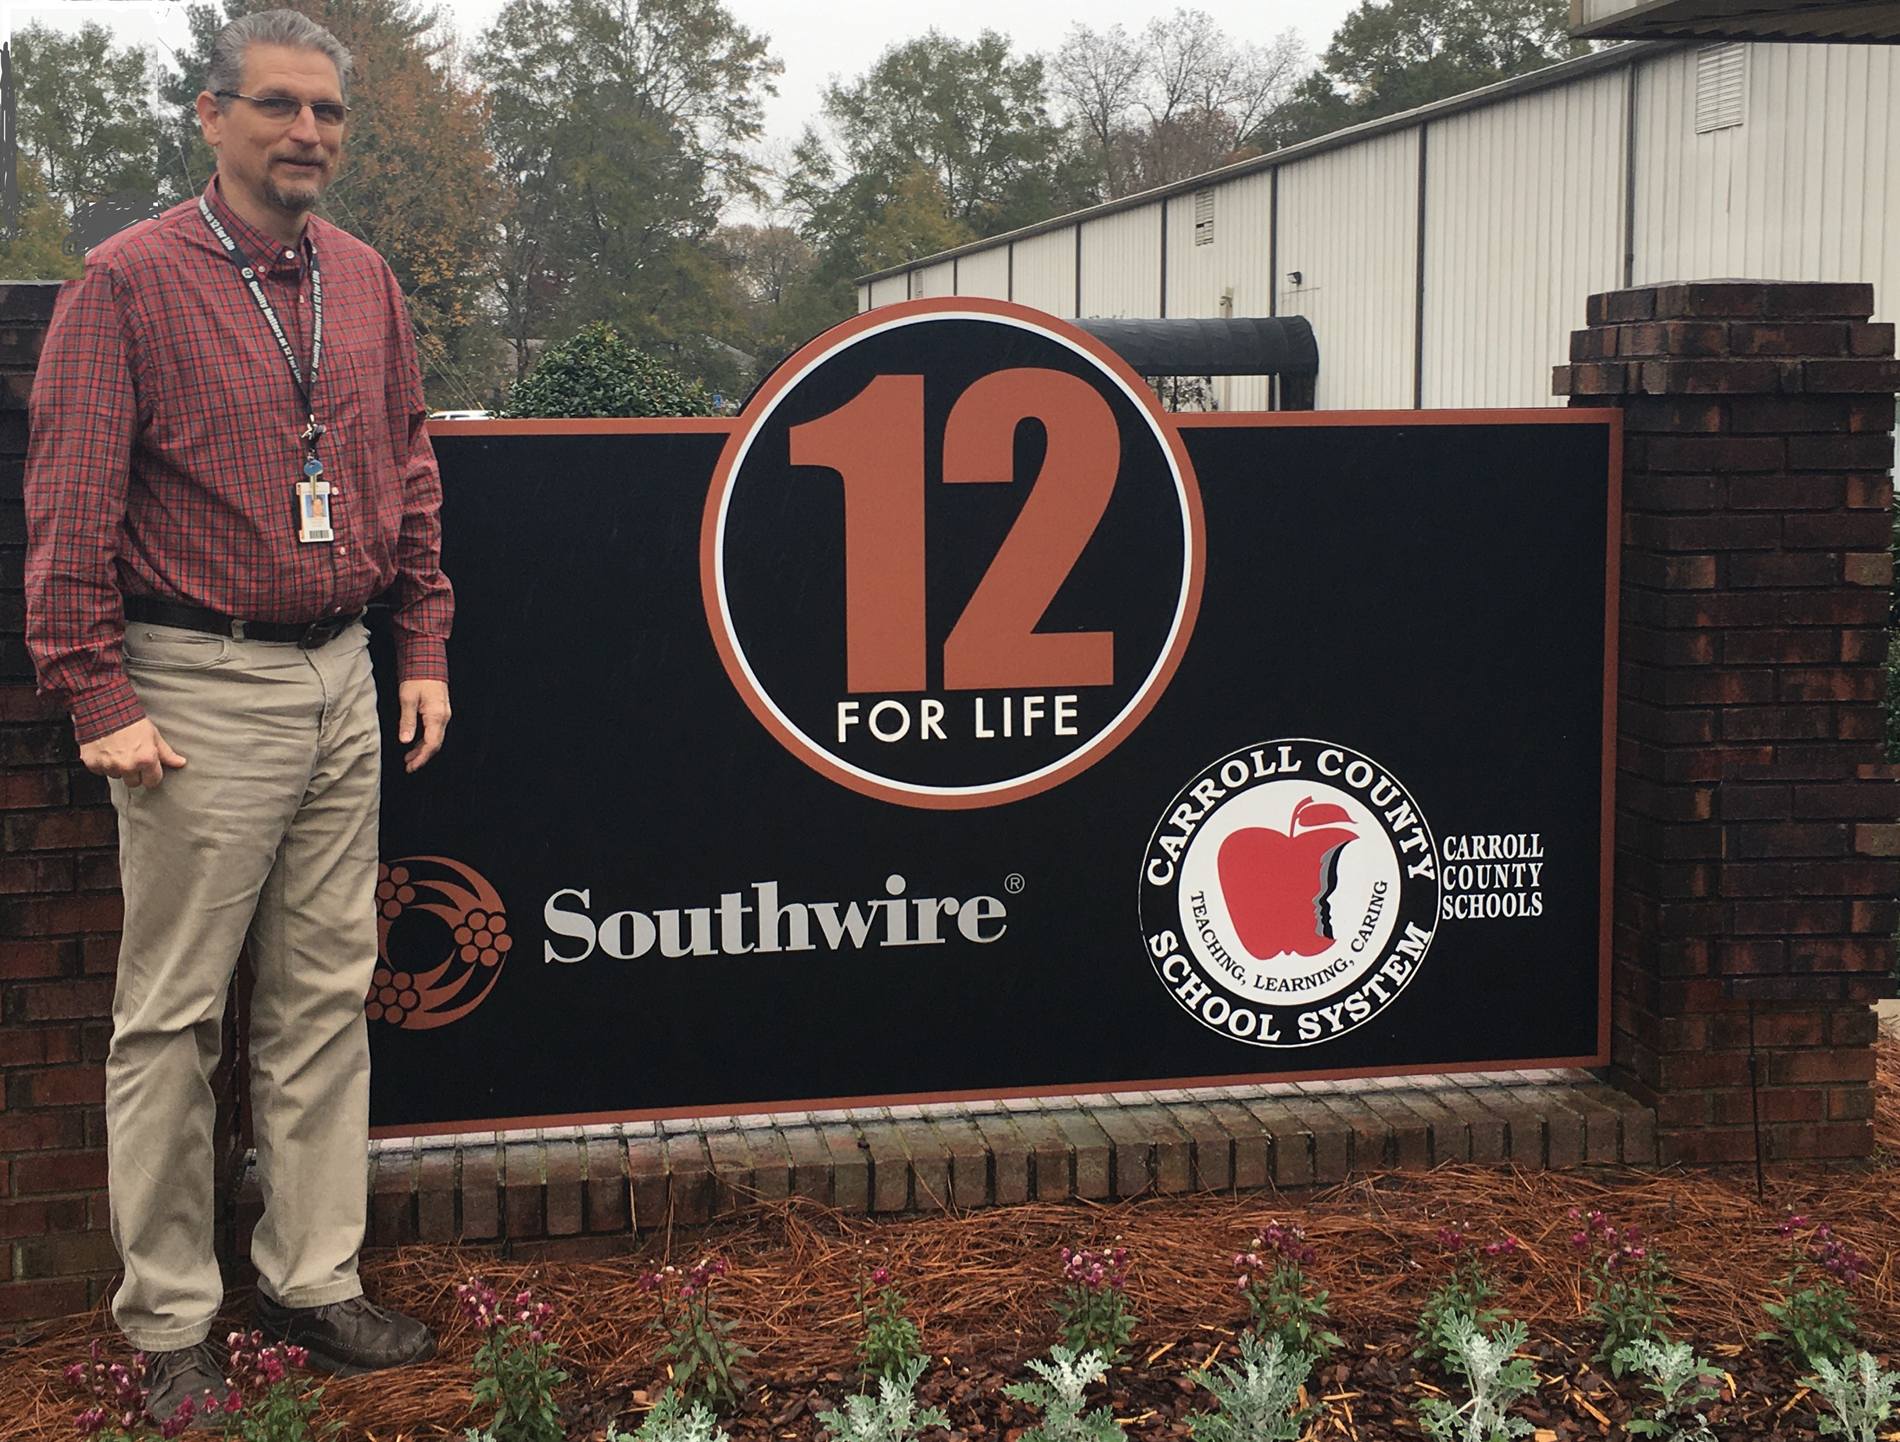 Mr. Grubbs Principal and Site Supervisor of 12-for-Life